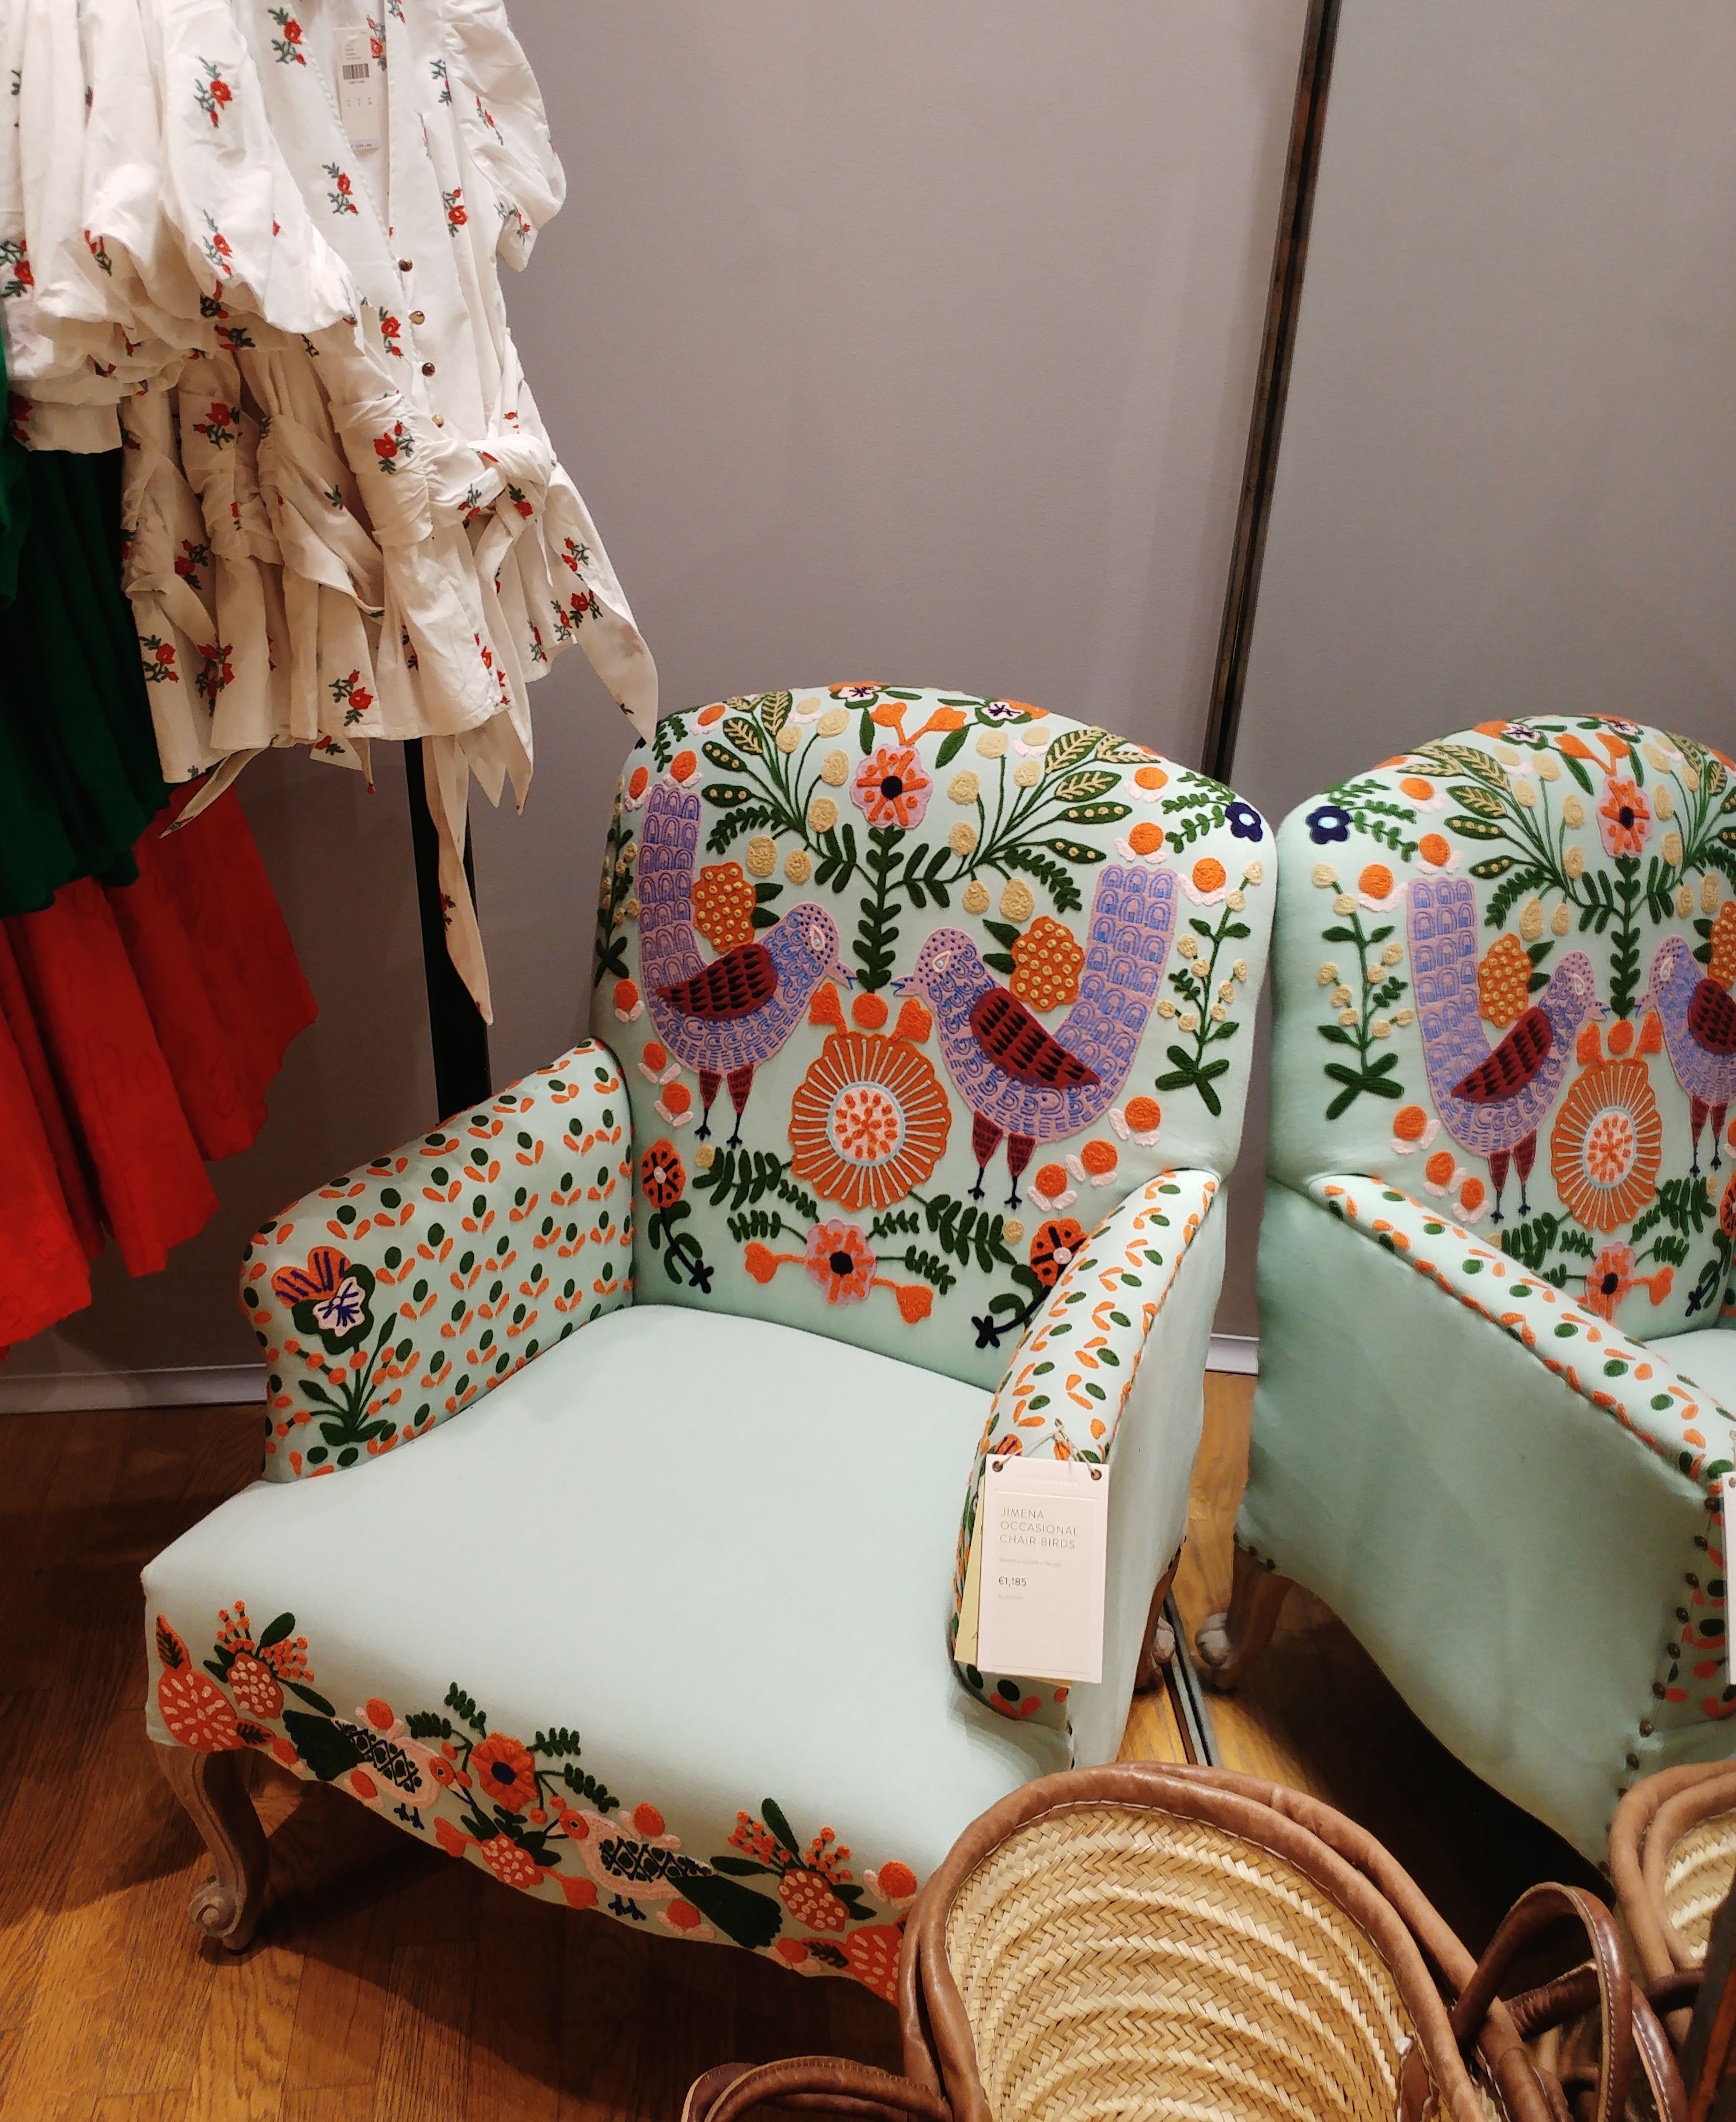 Anthropologie shop in Barcelona - embroidered bohemian arm-chair